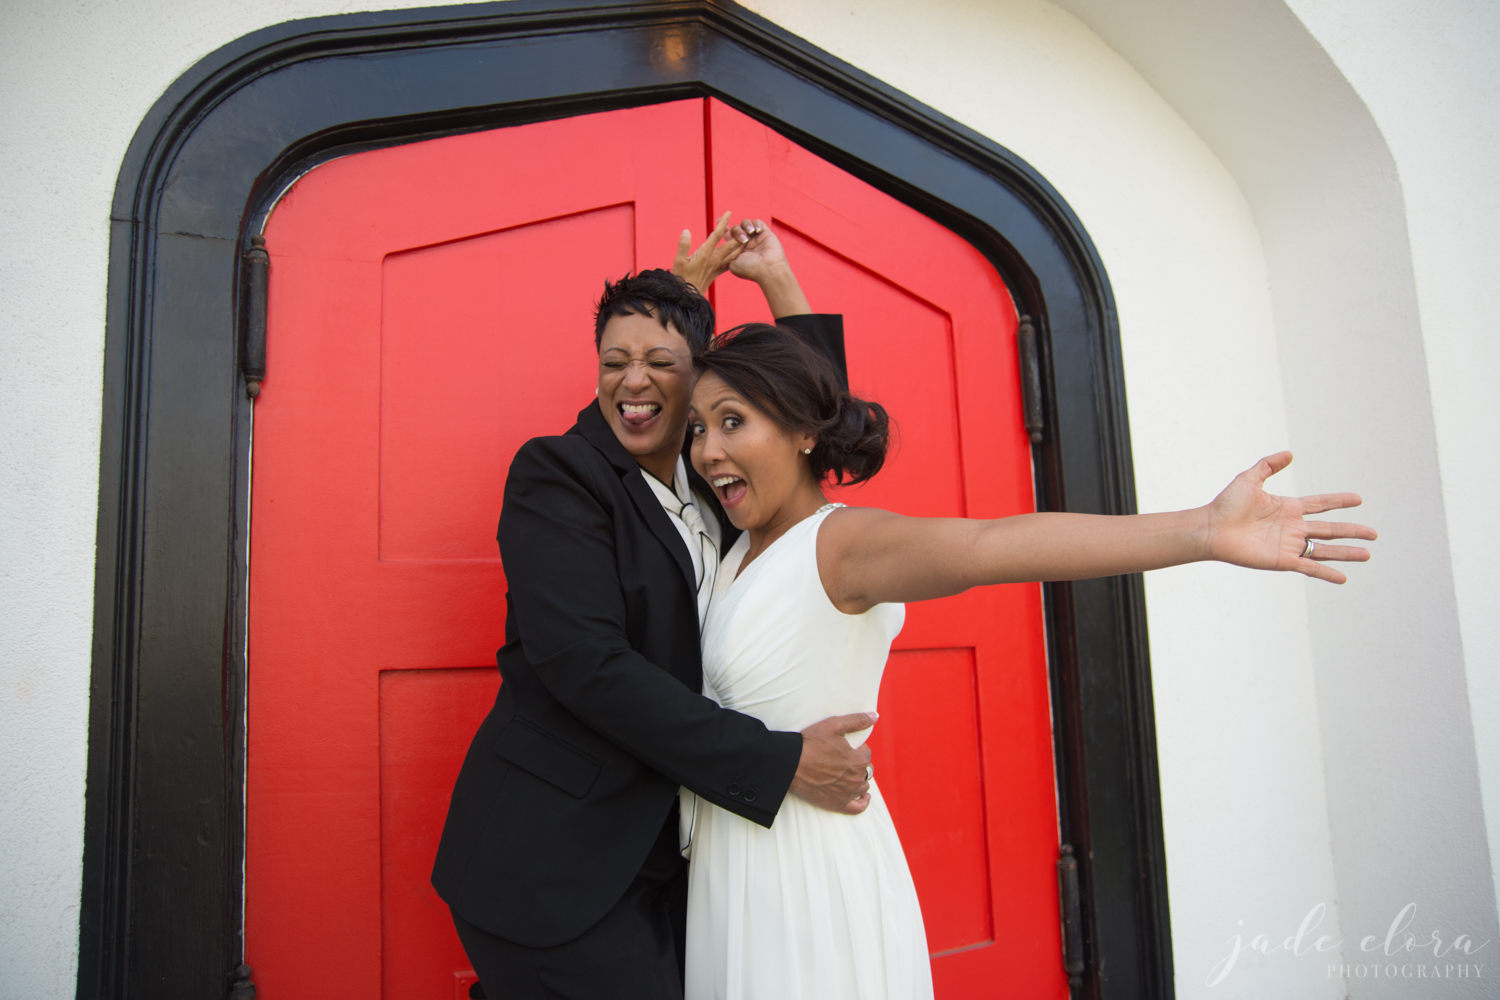 Newlywed Lesbian Couple Celebrates in Front of Red Doors of The York Manor